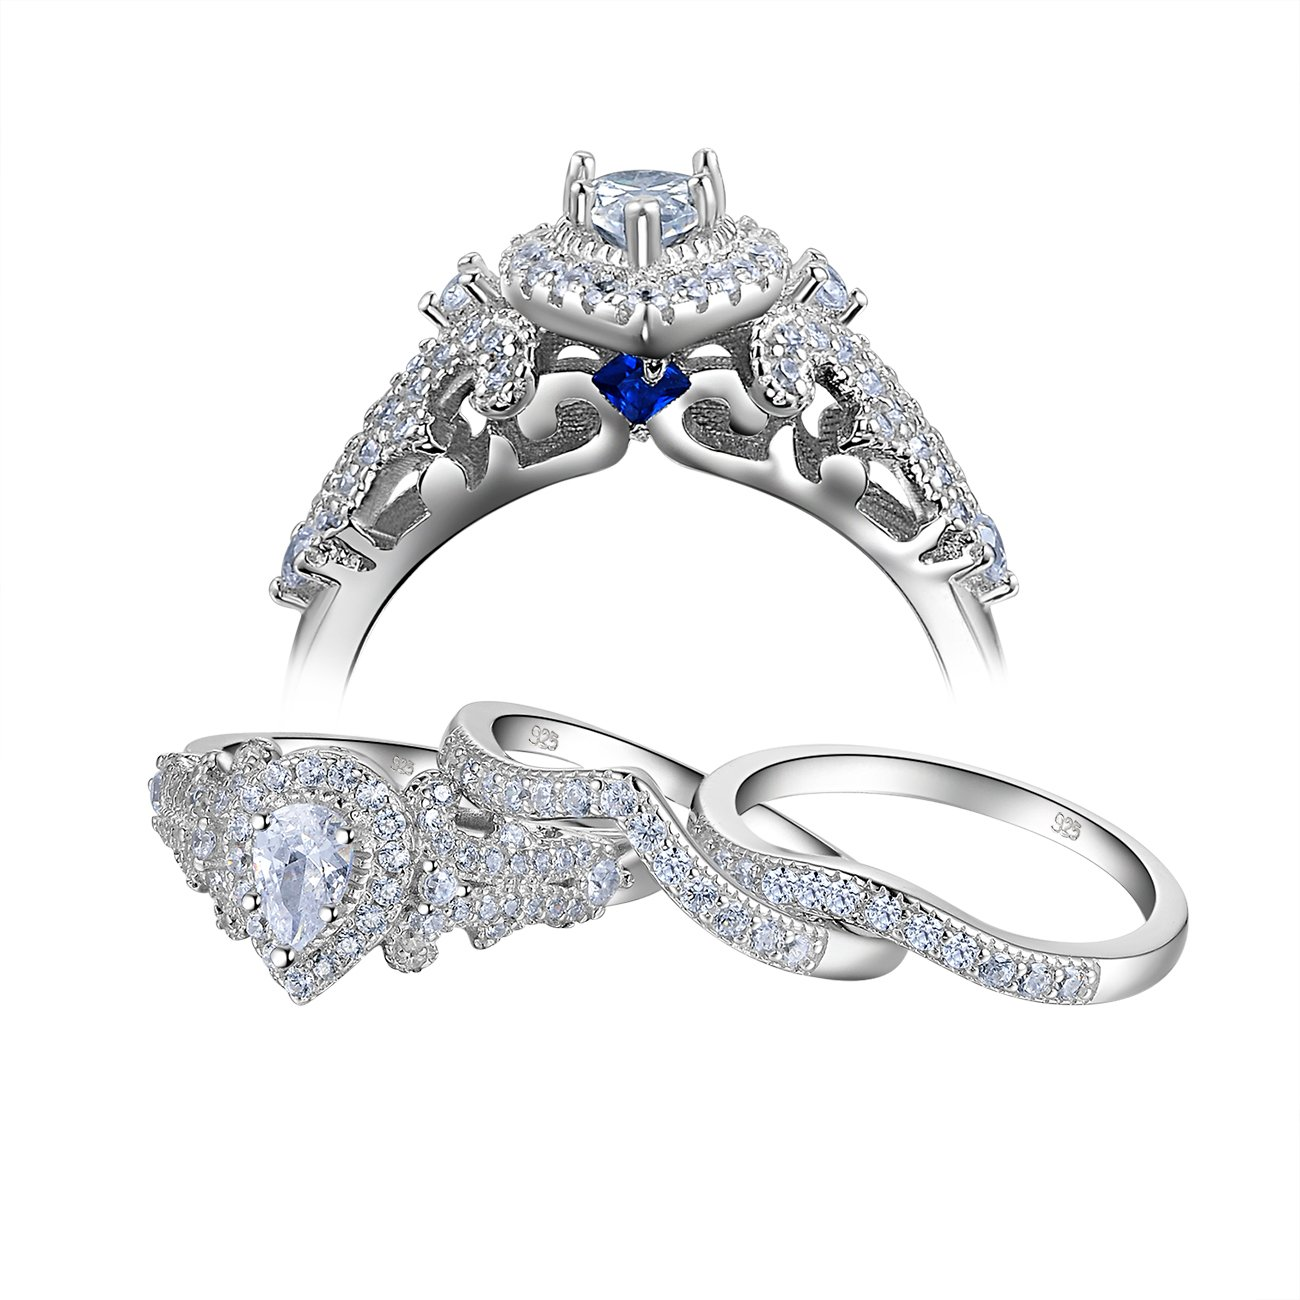 Newshe Wedding Engagement Ring Set For Women 925 Sterling Silver 3pcs 1.4Ct Pear White Cz Size 8